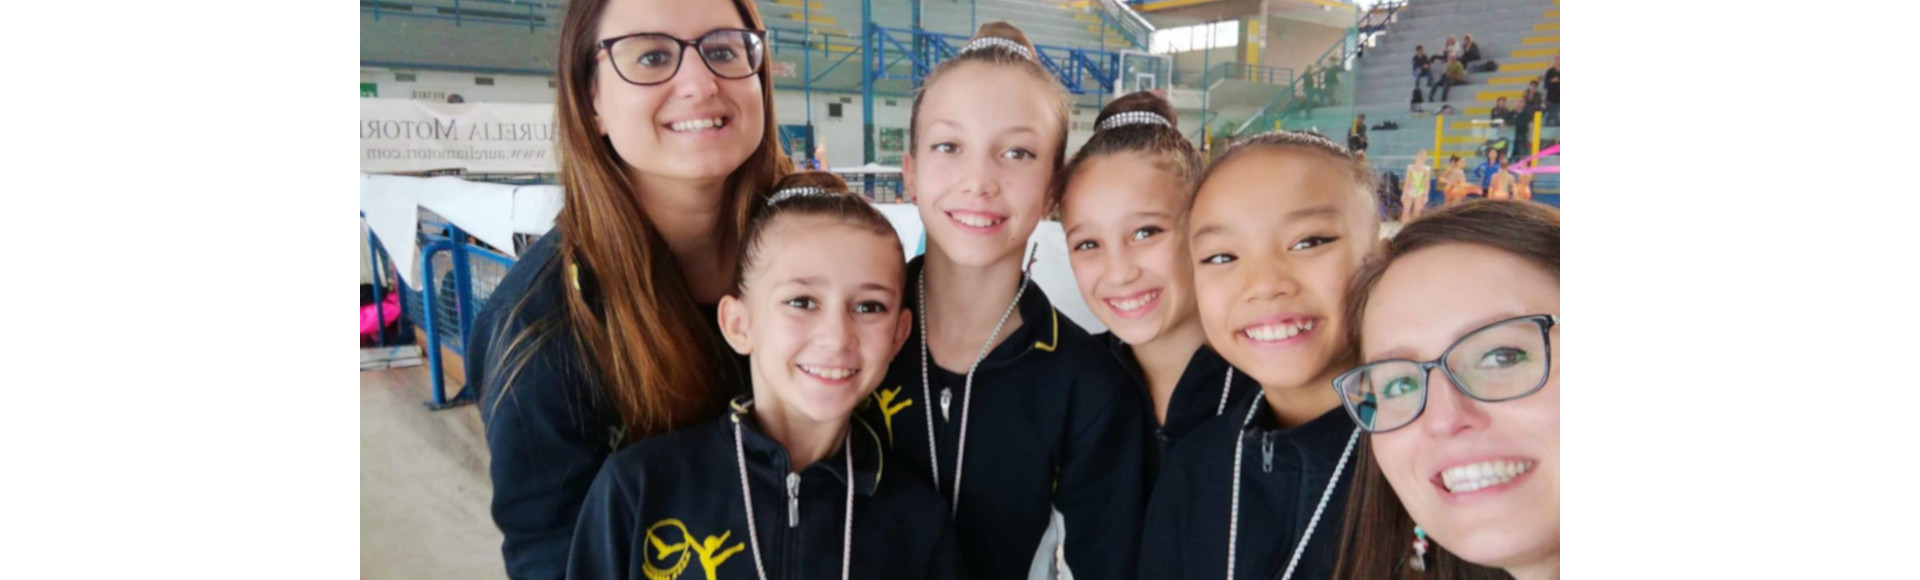 Campionato di Squadra Allieve Gold FGI